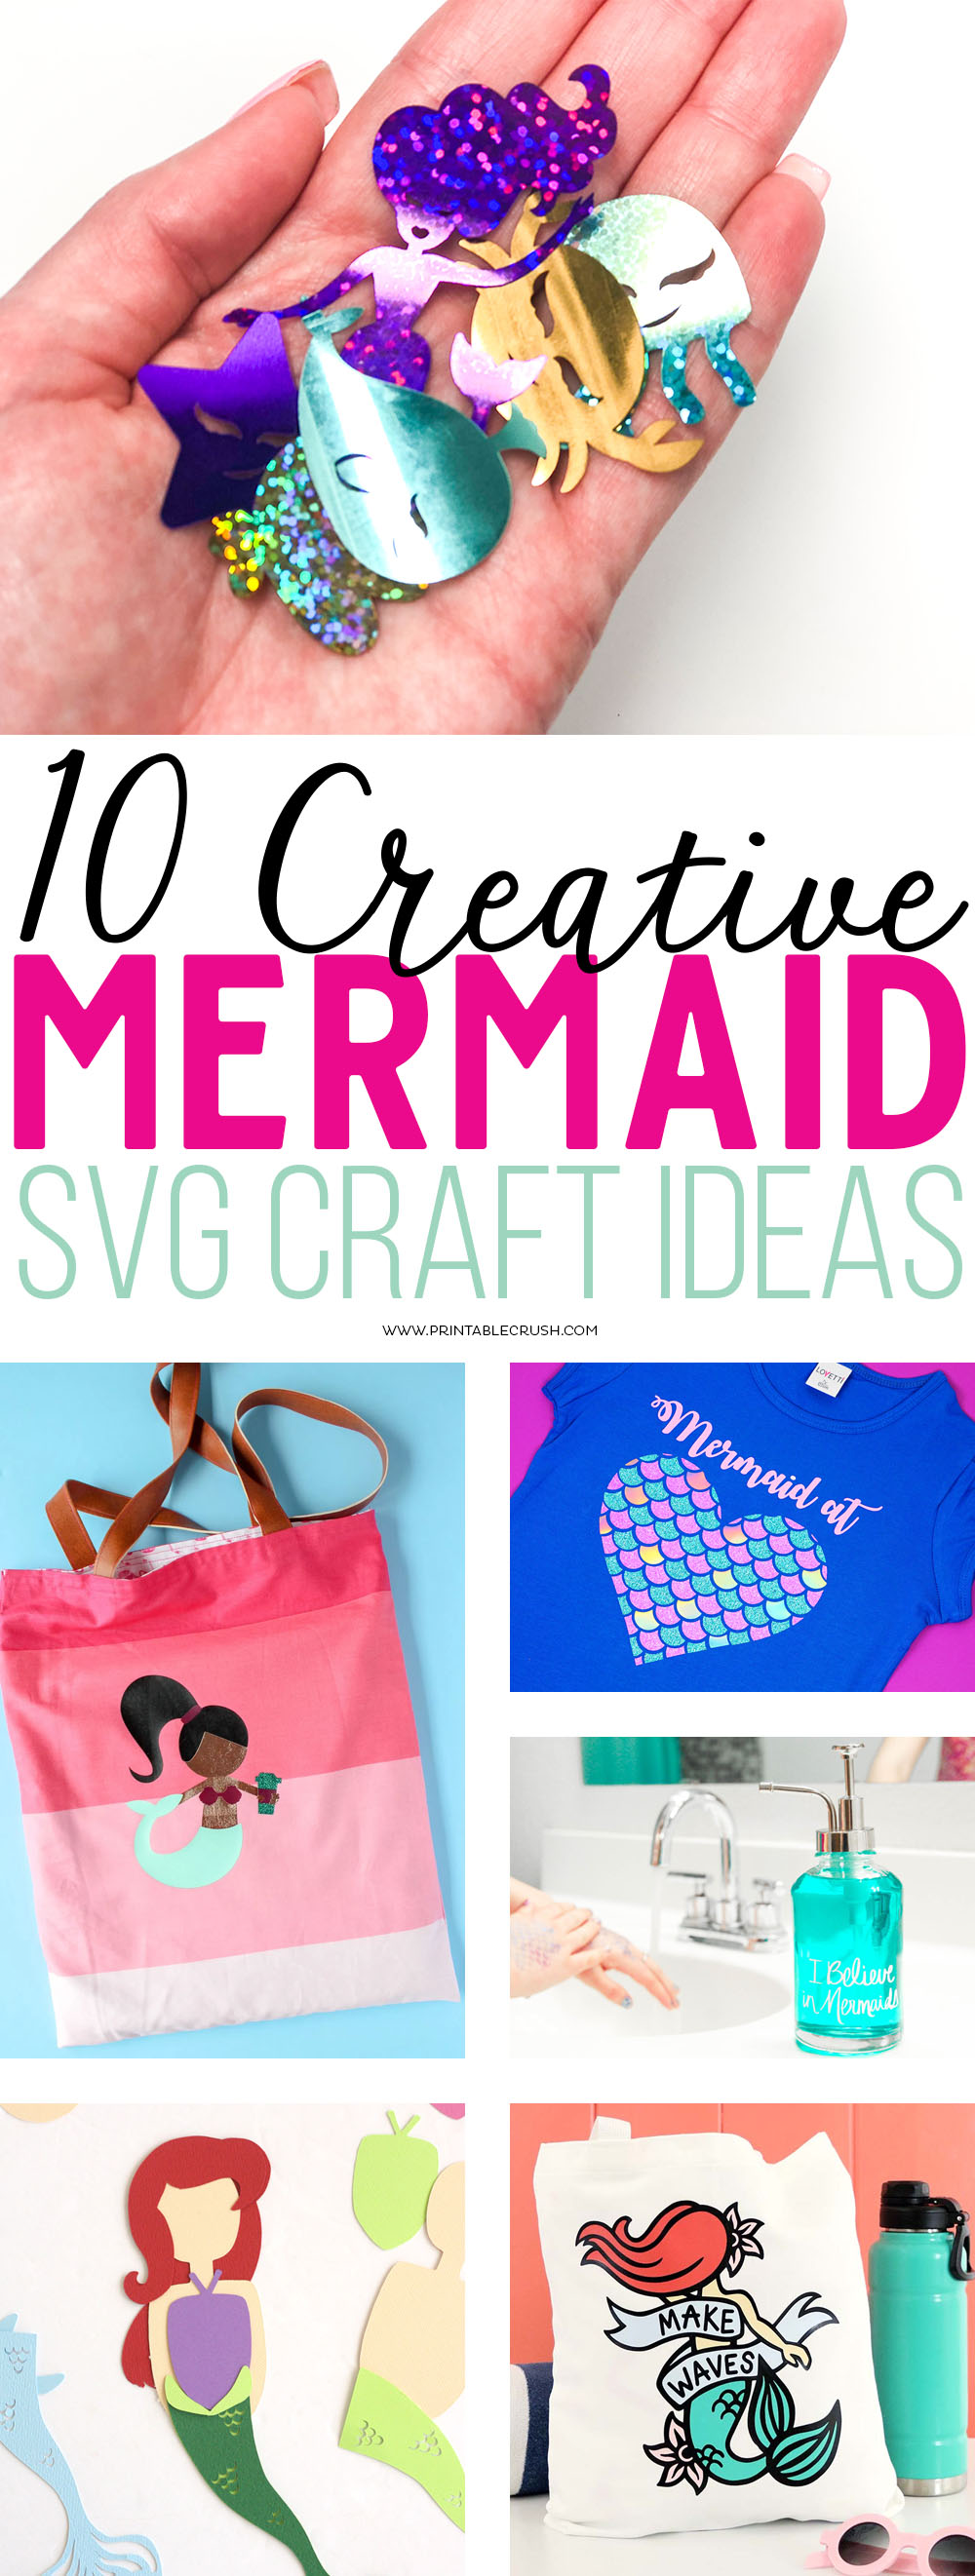 I've rounded up 10 Creative Mermaid SVG File Ideas using graphics that will be perfect for parties, vinyl projects, home decor, and more!